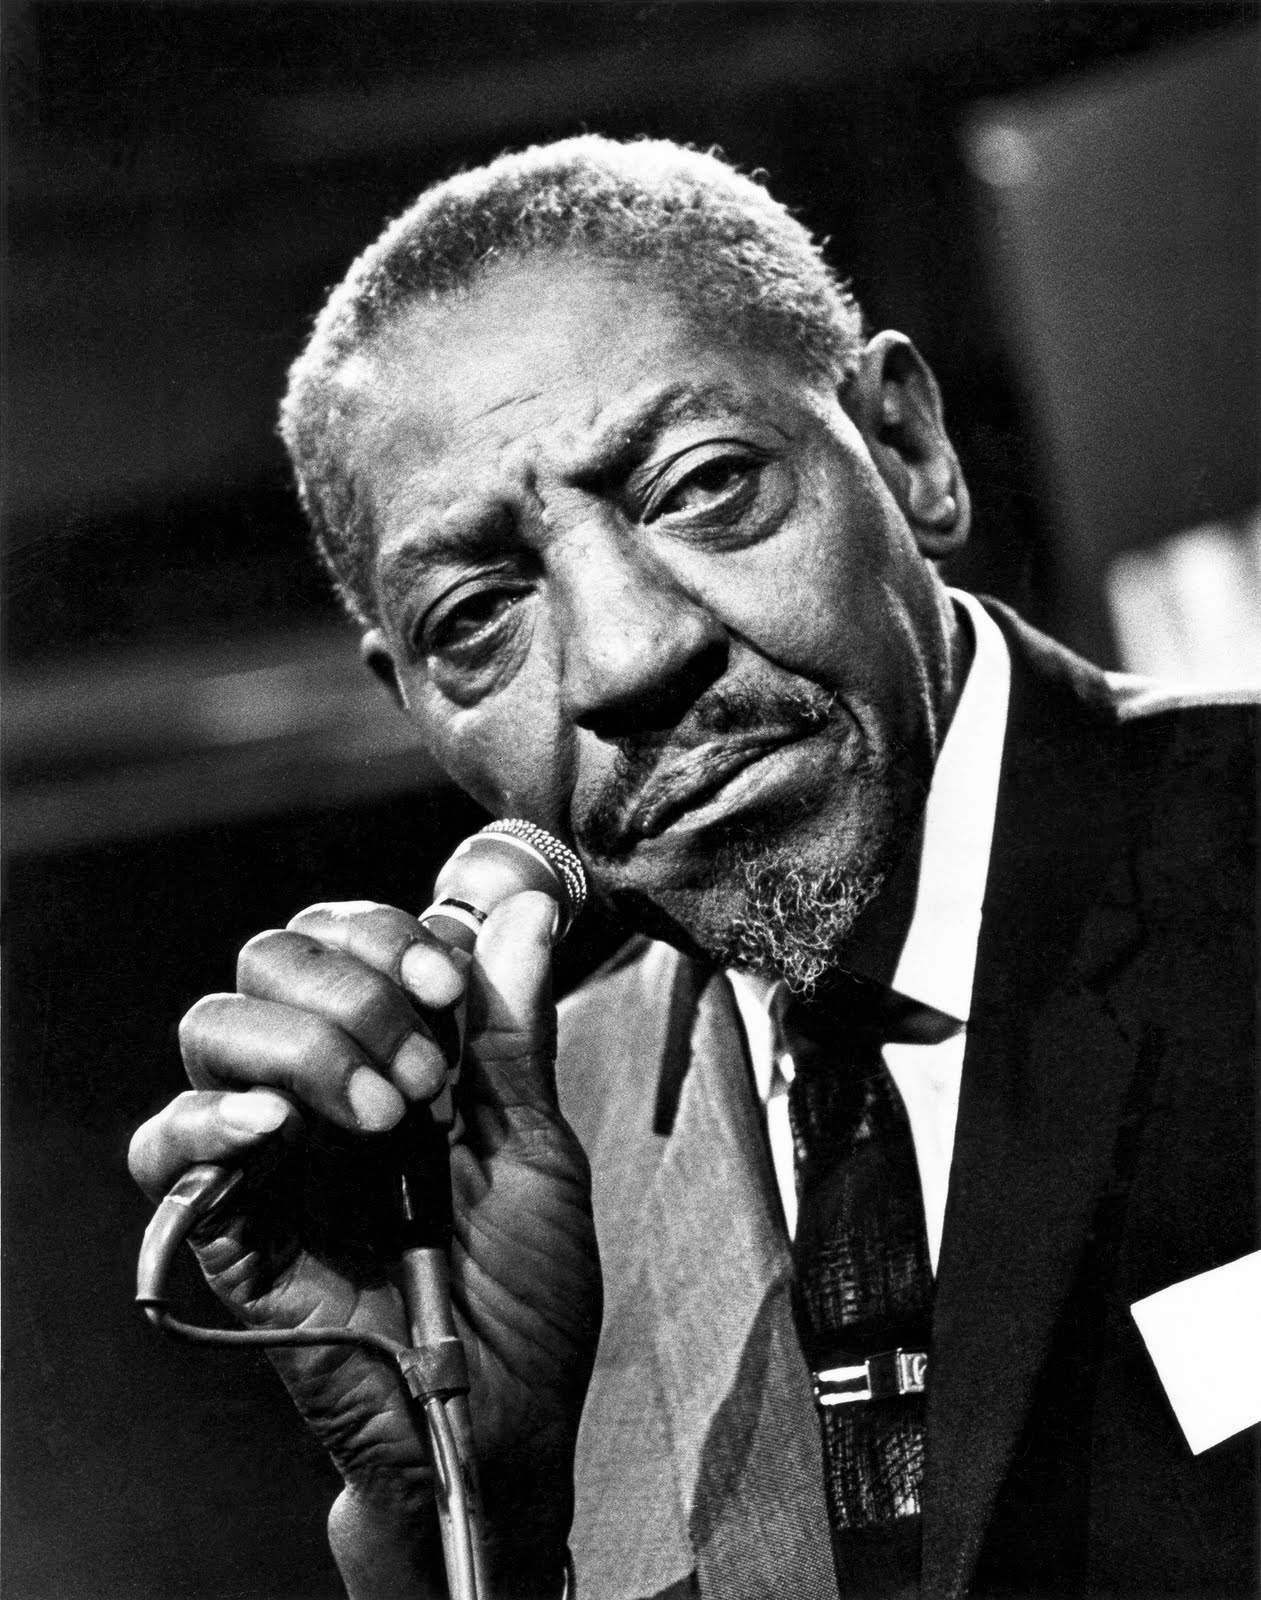 Sonny Boy Williamson 2 Yardbirds Sonny Boy Williamson The Yardbirds